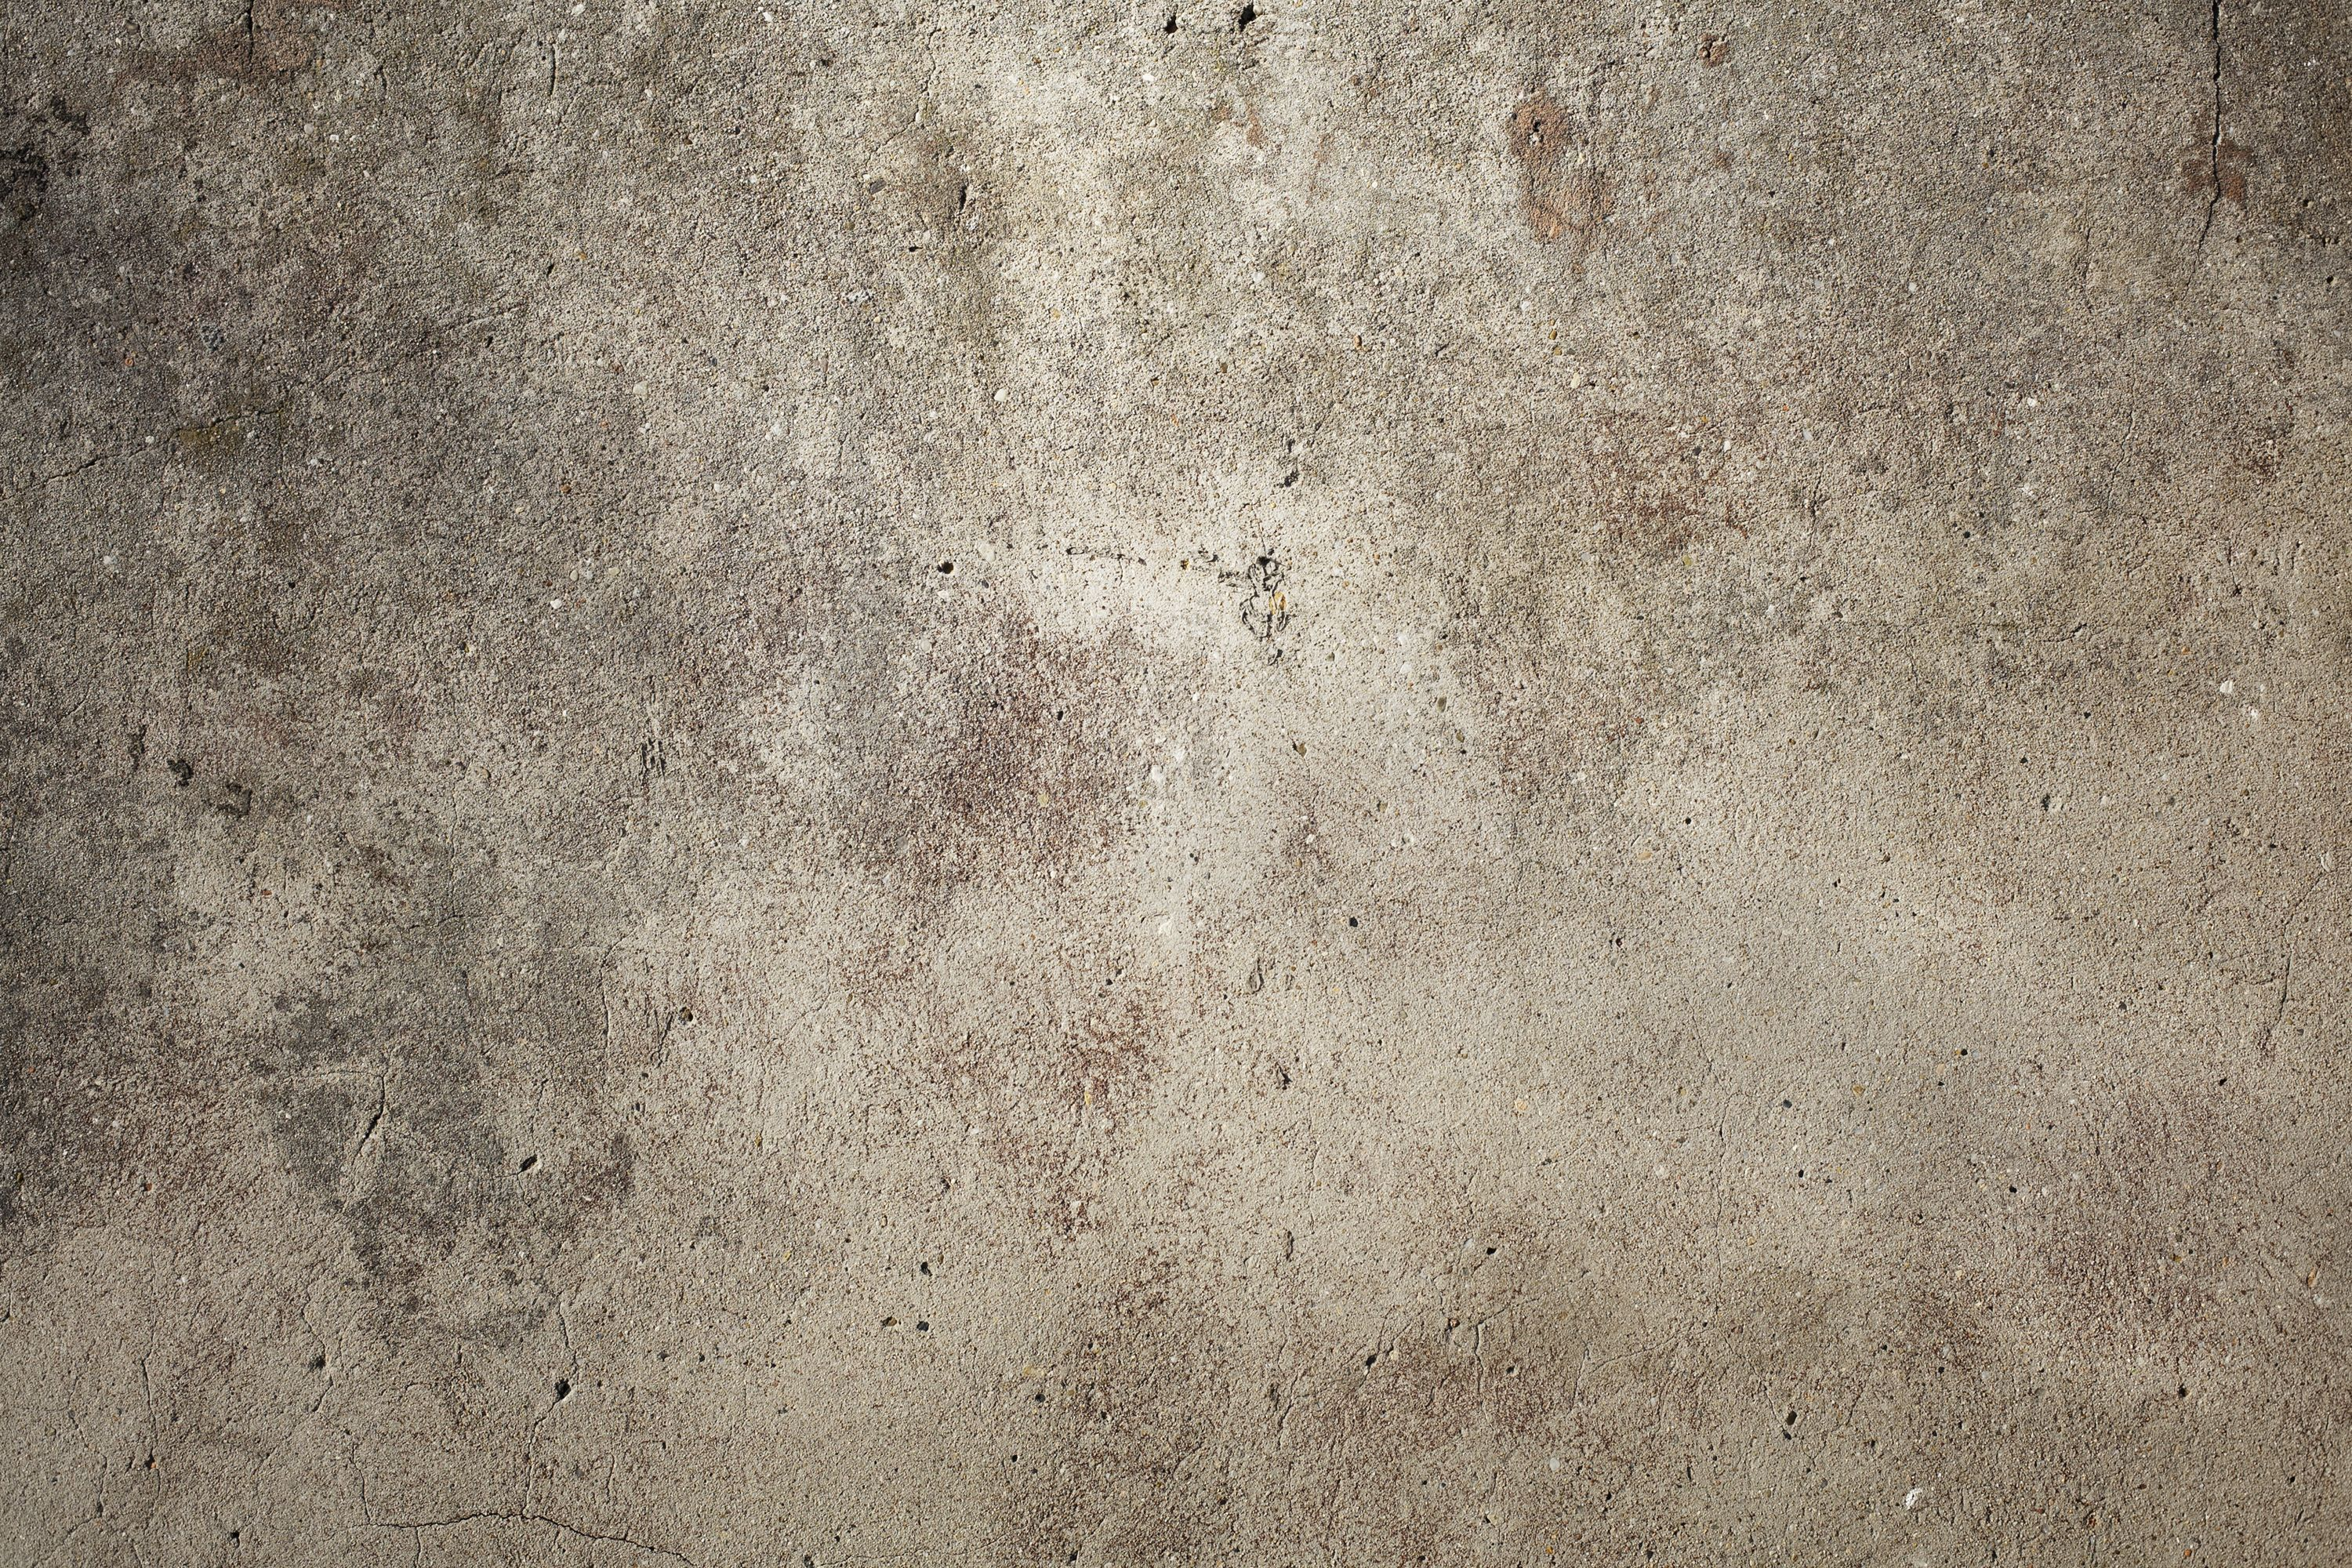 Wall Texture Google Search Concrete Wall Free Resource